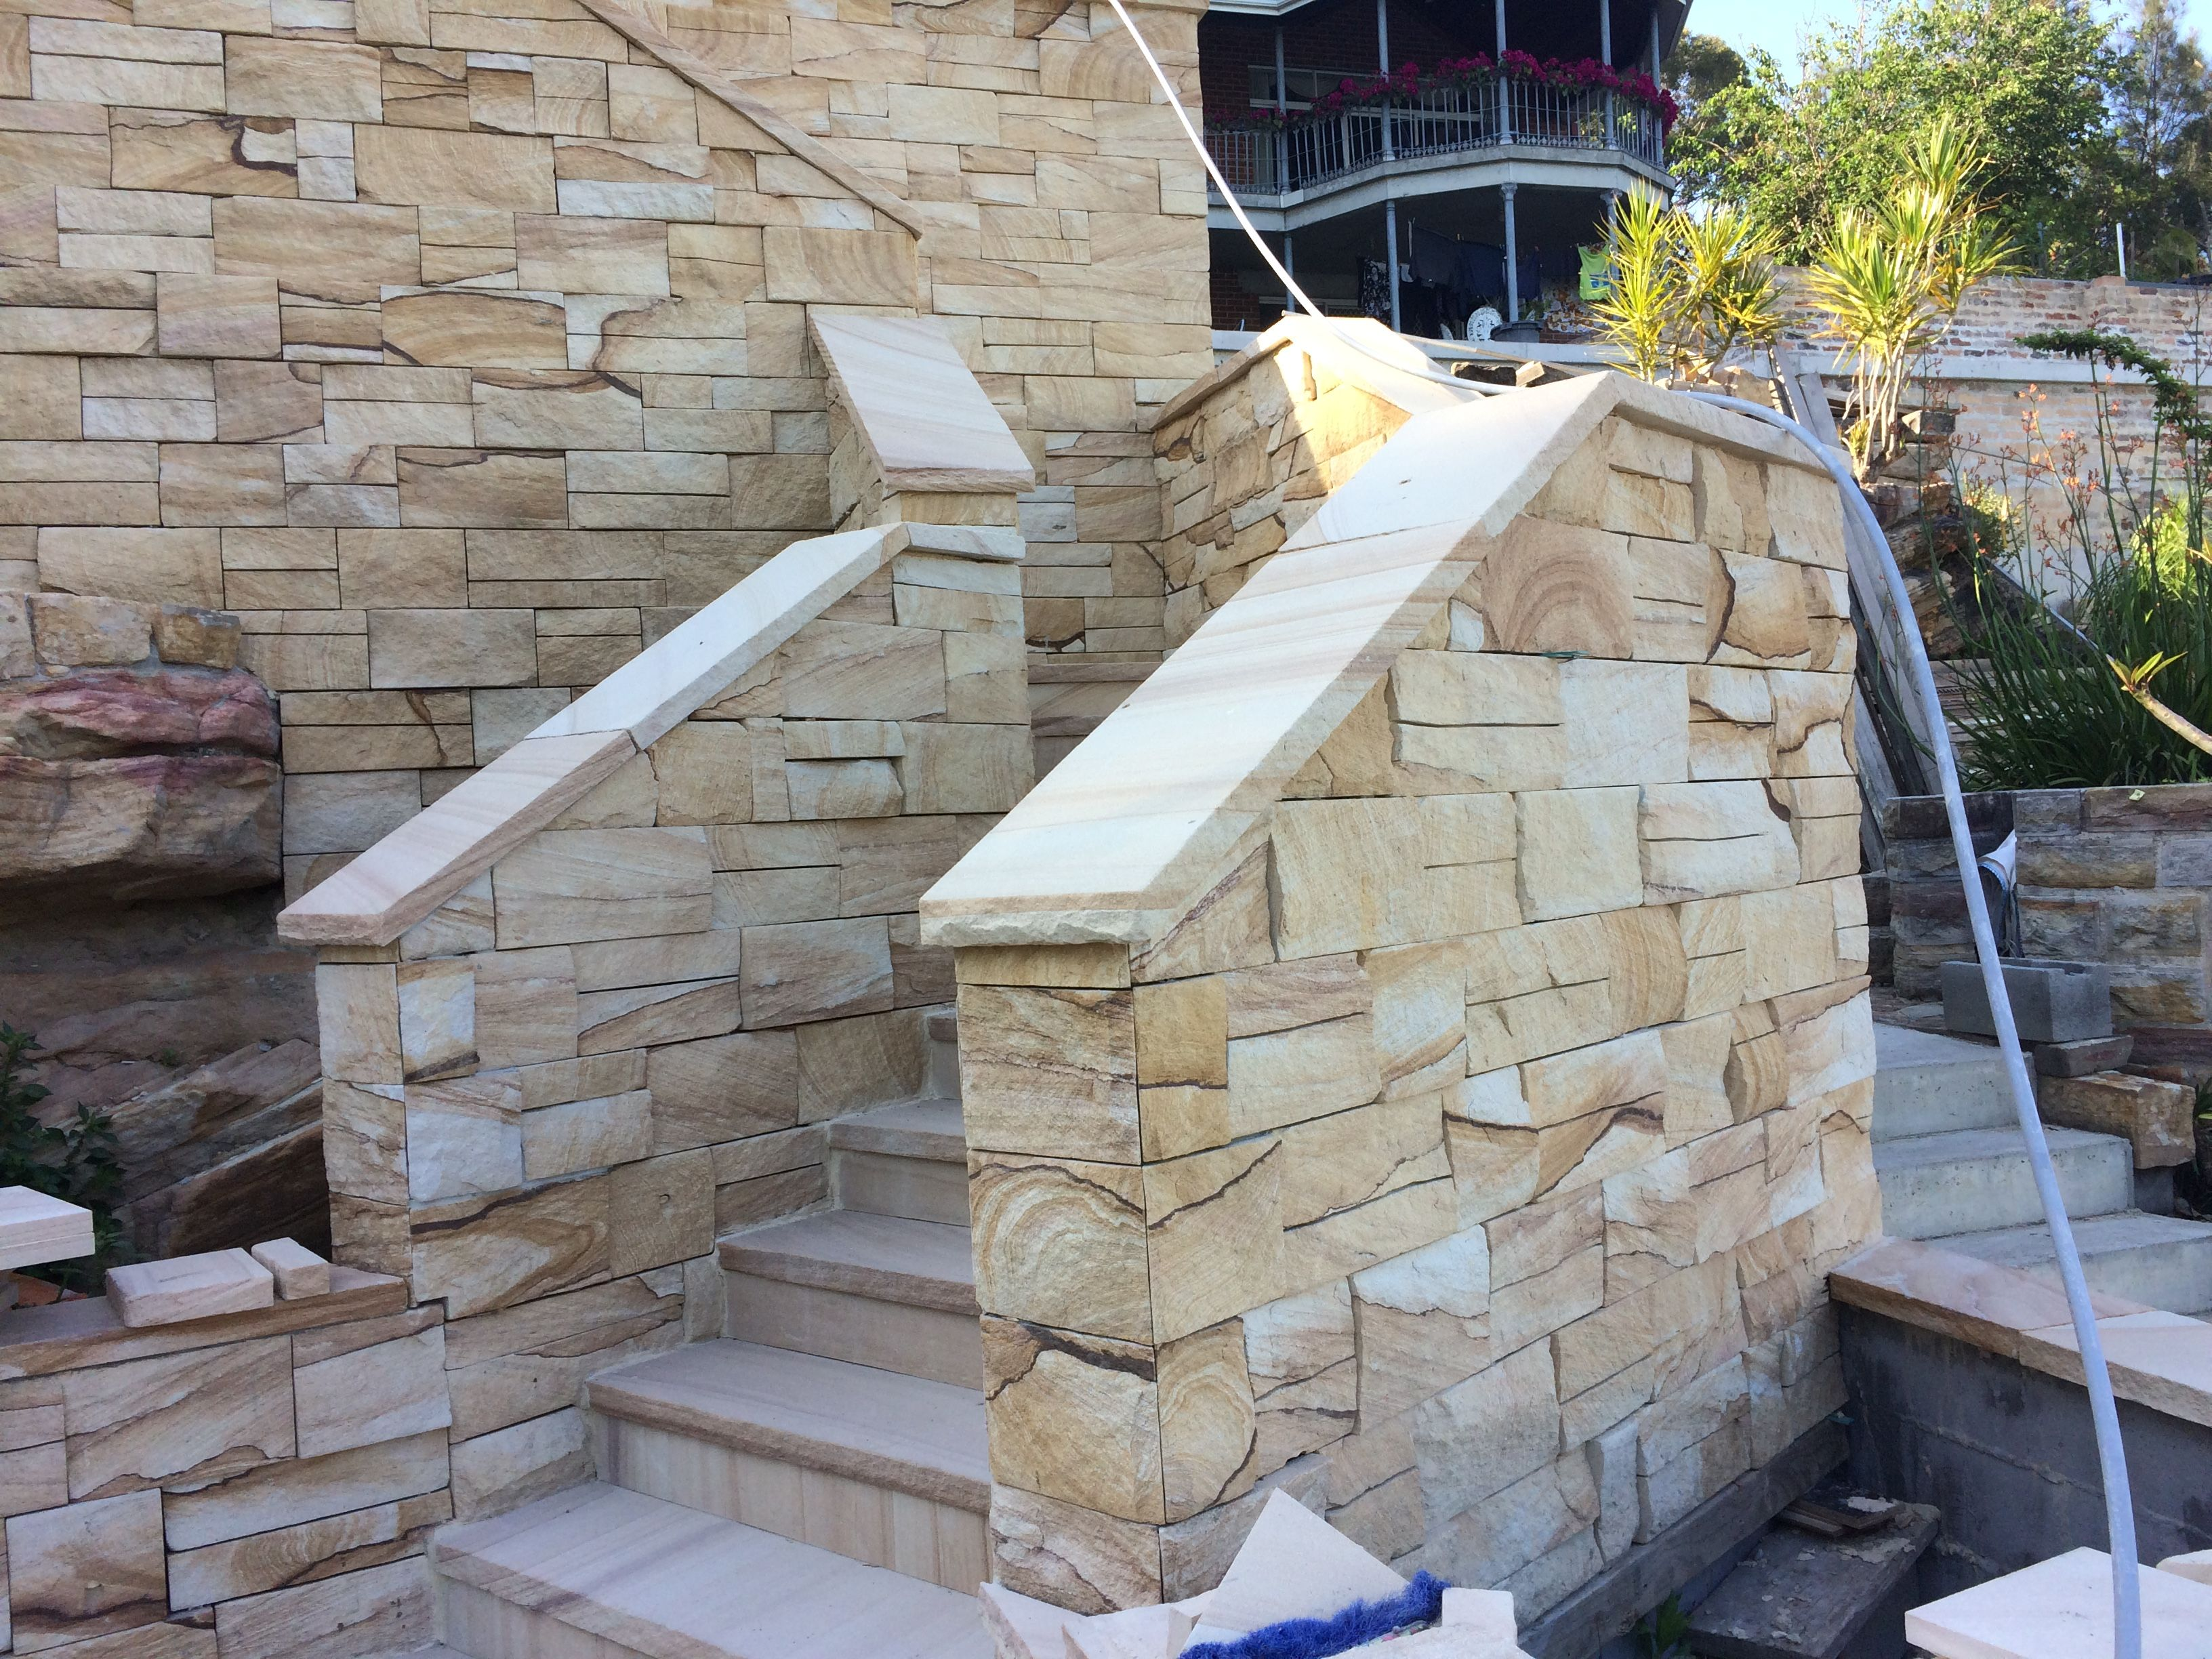 Kirra Banded Stone Cladding Stone Capping Sandstone Steps Paving Stone Aussietecture Australiansandston In 2020 Natural Stone Wall Stone Cladding Paving Stones